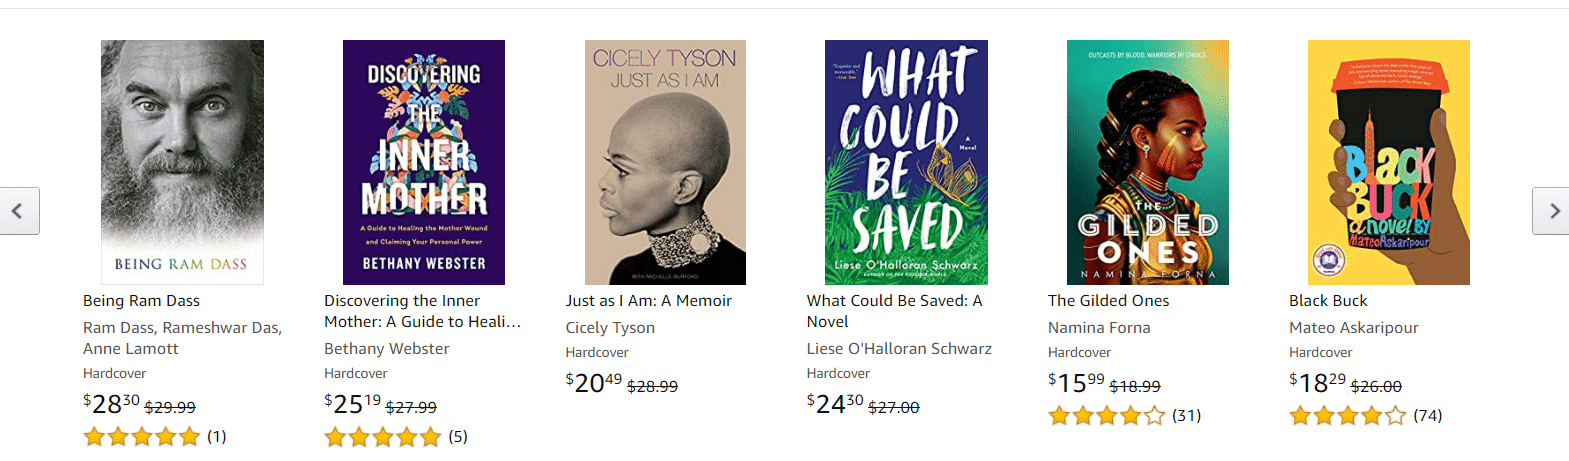 Amazon book cover thumbnails example